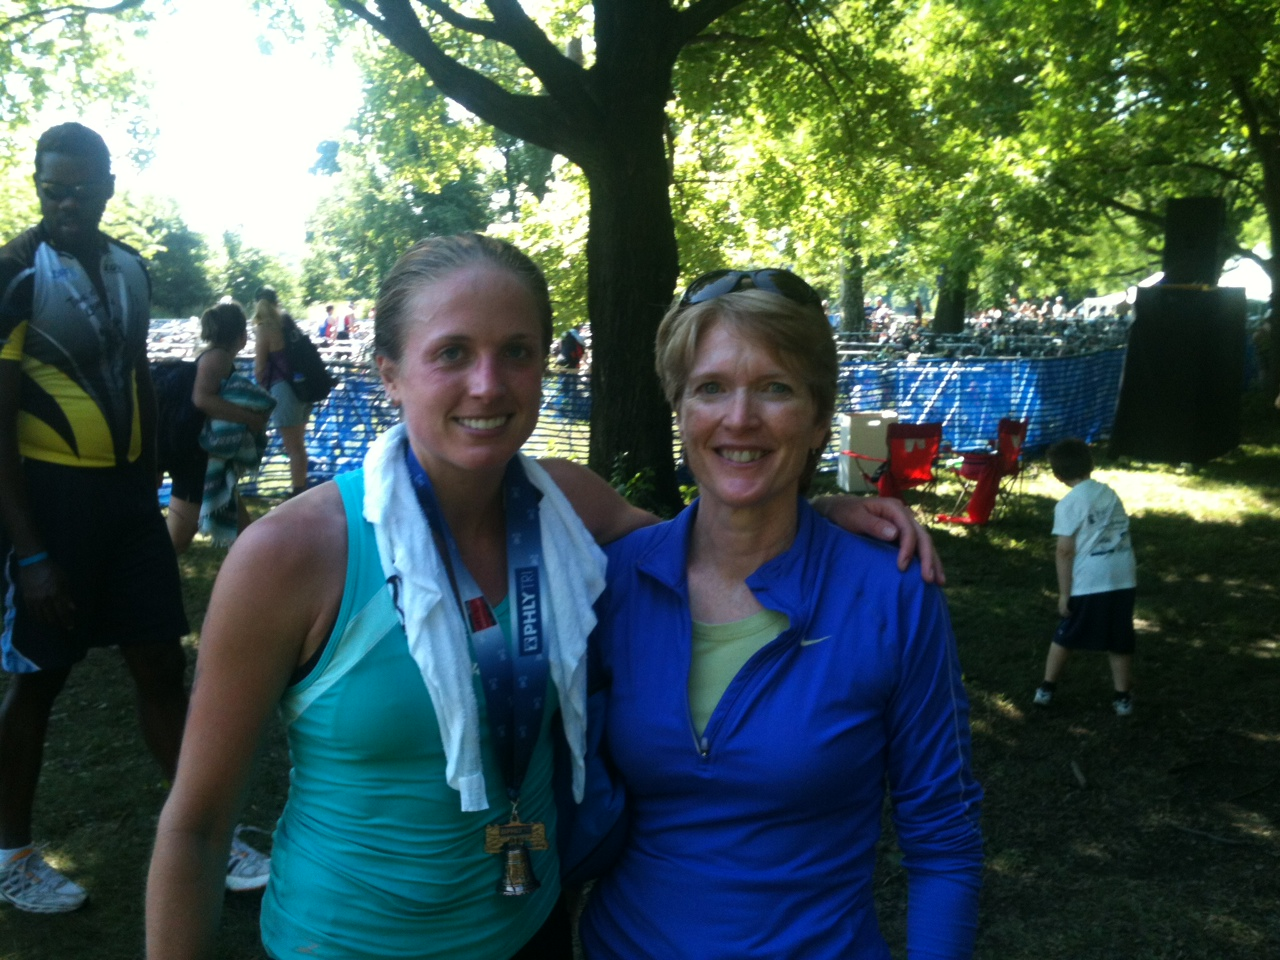 Me and Mom at my very first race, the Philly Tri.